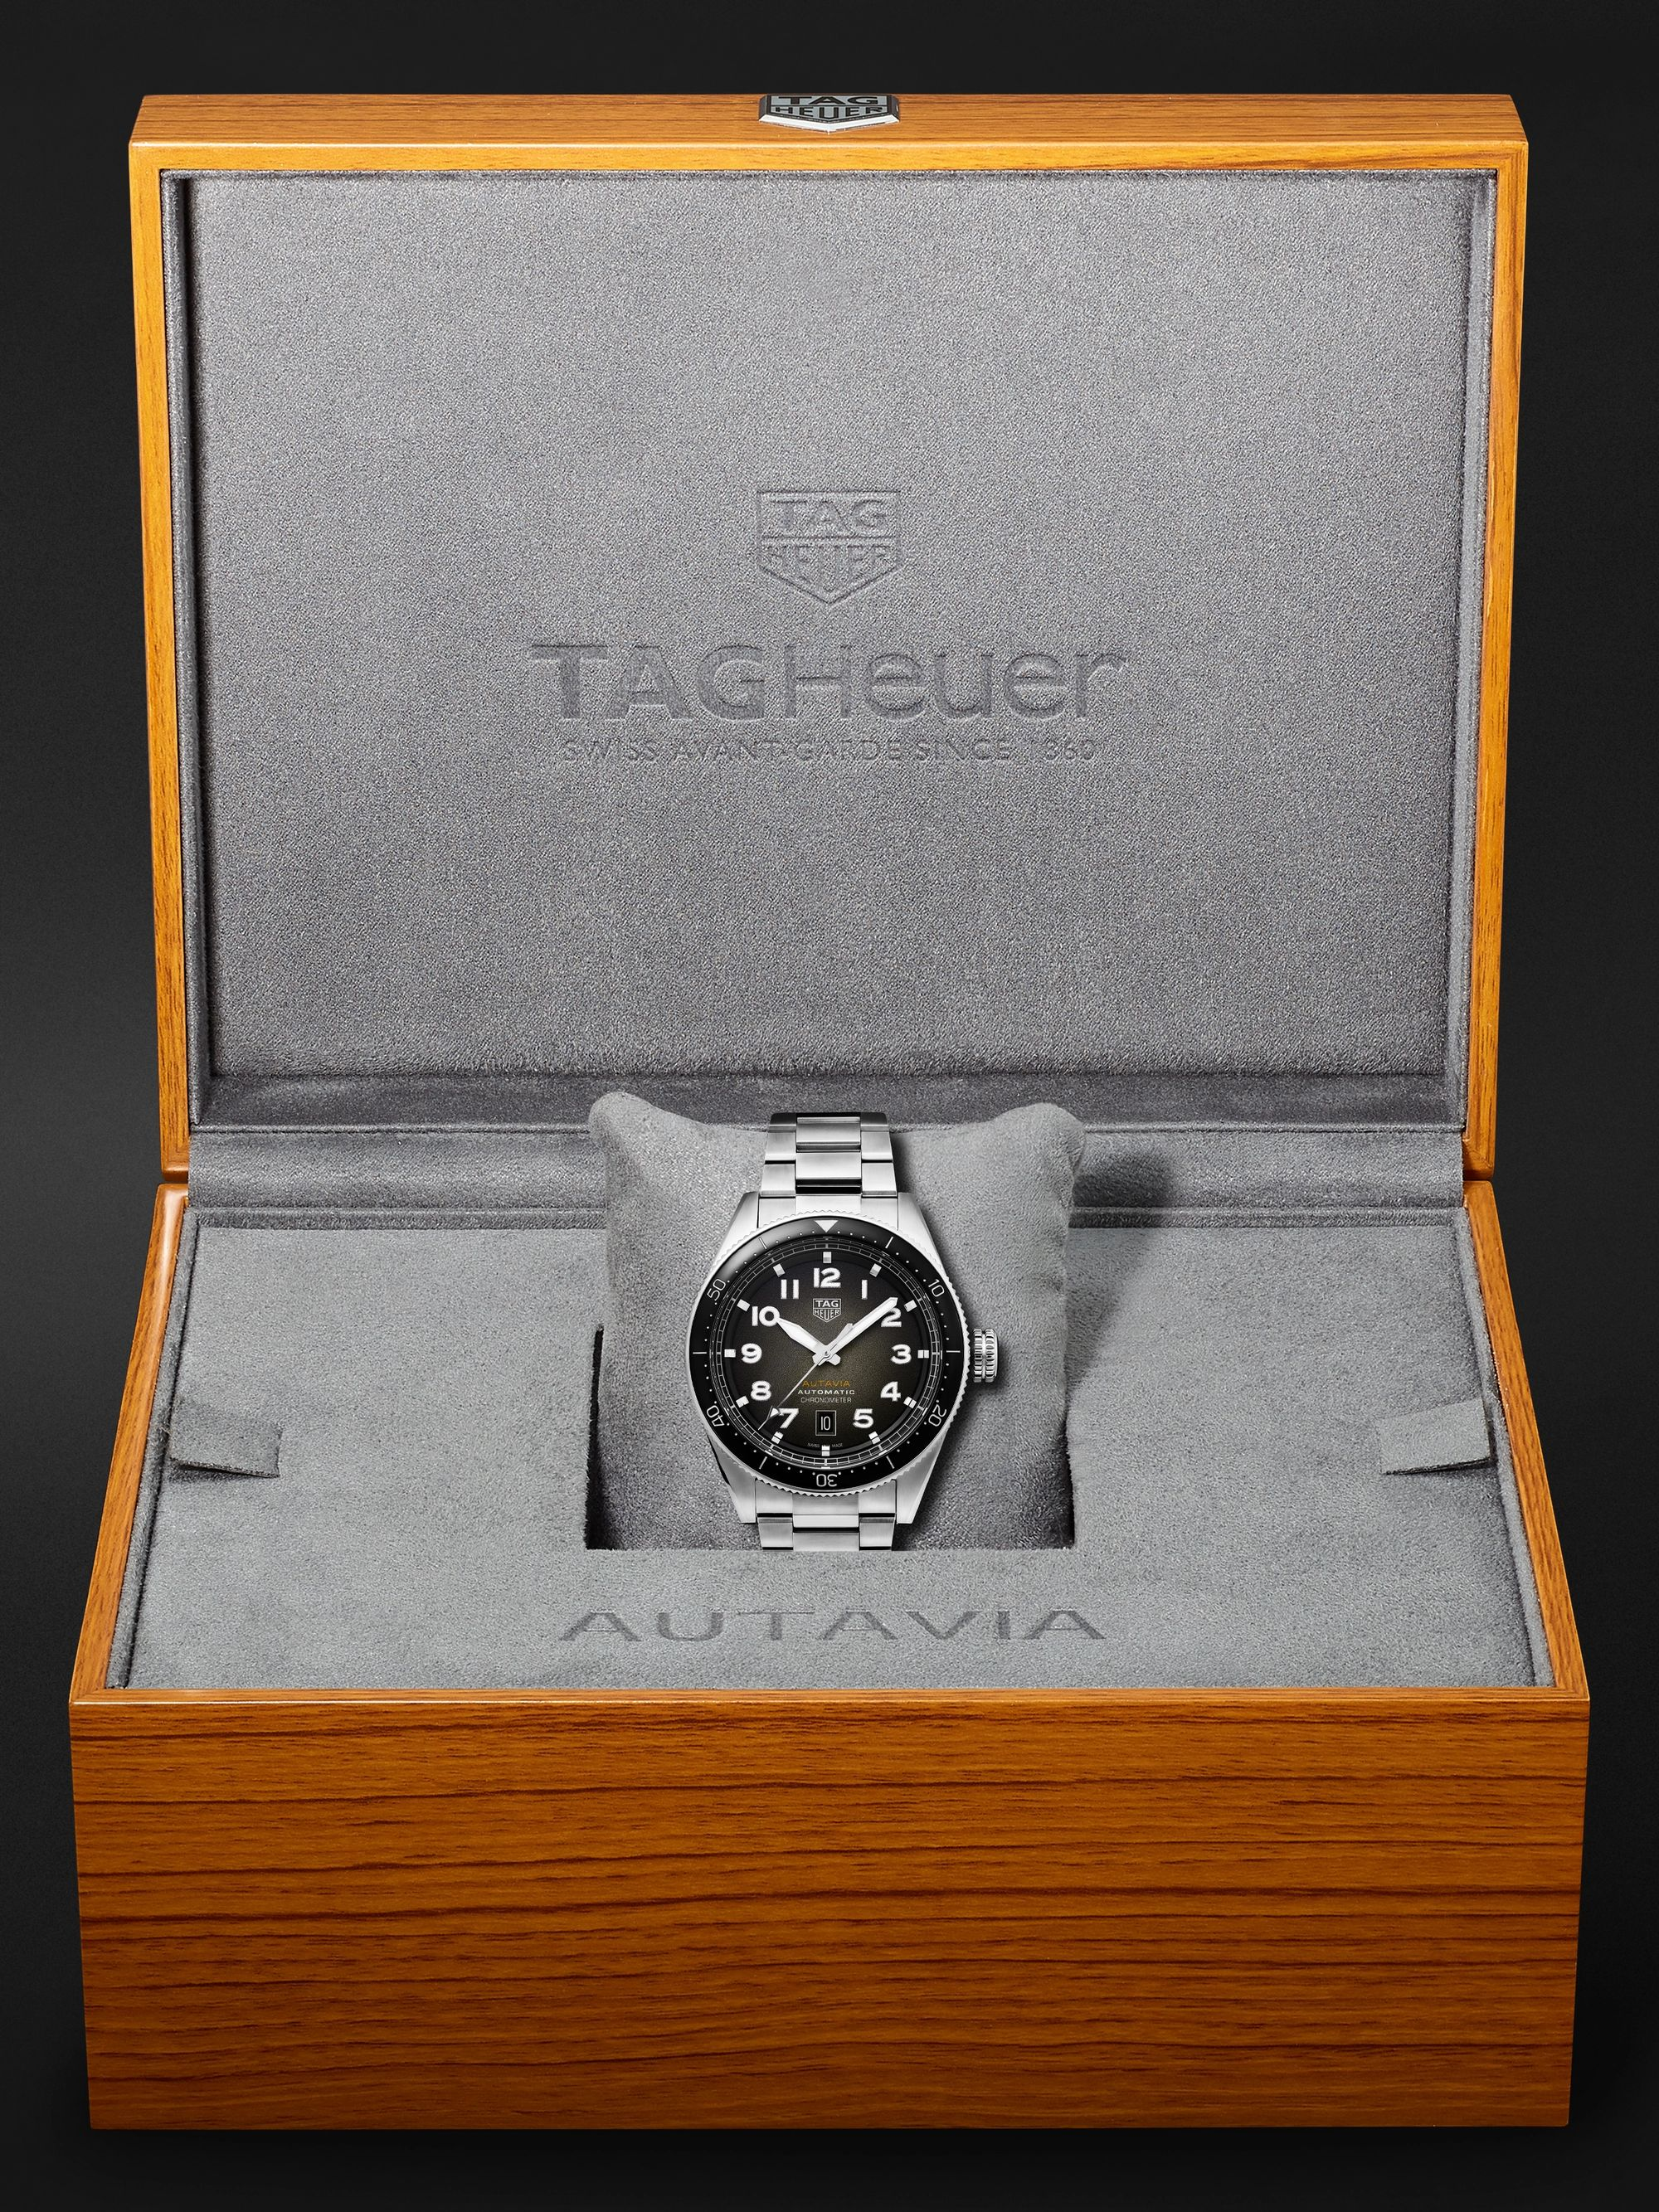 TAG Heuer Autavia Automatic Chronometer 42mm Stainless Steel Watch, Ref. No. WBE5114.EB0173